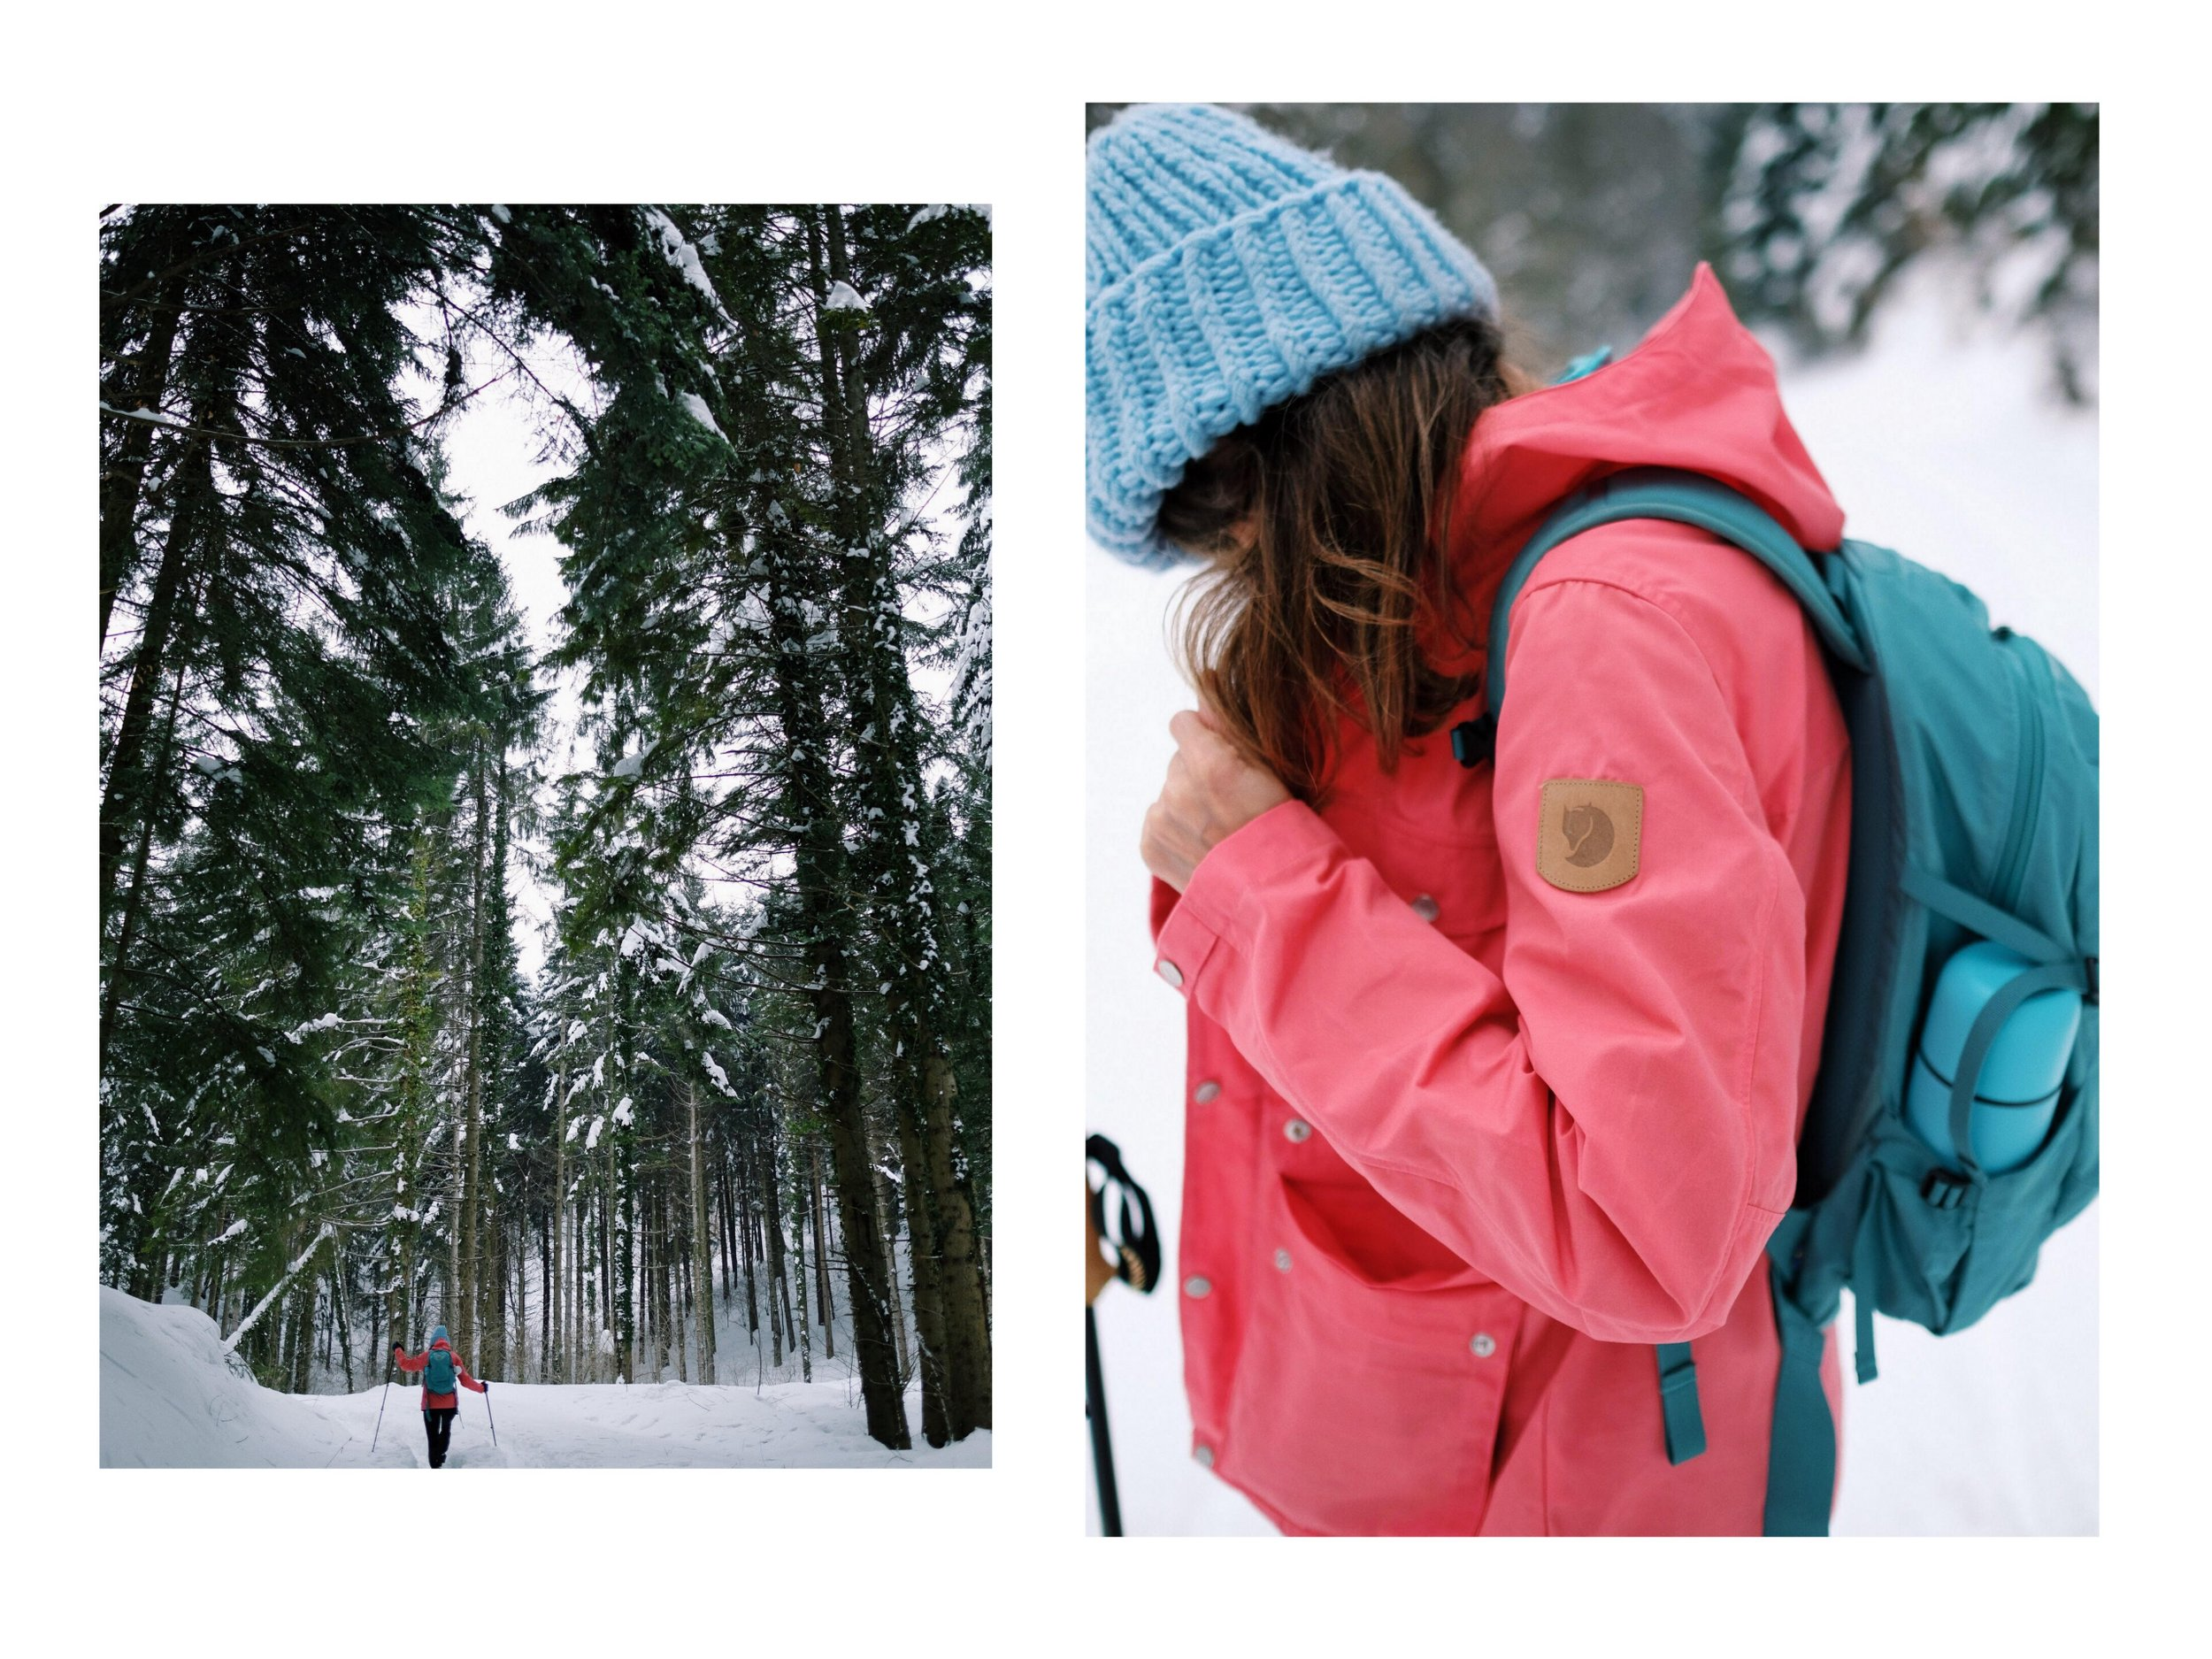 fjallraven winter hike/ana bacinger